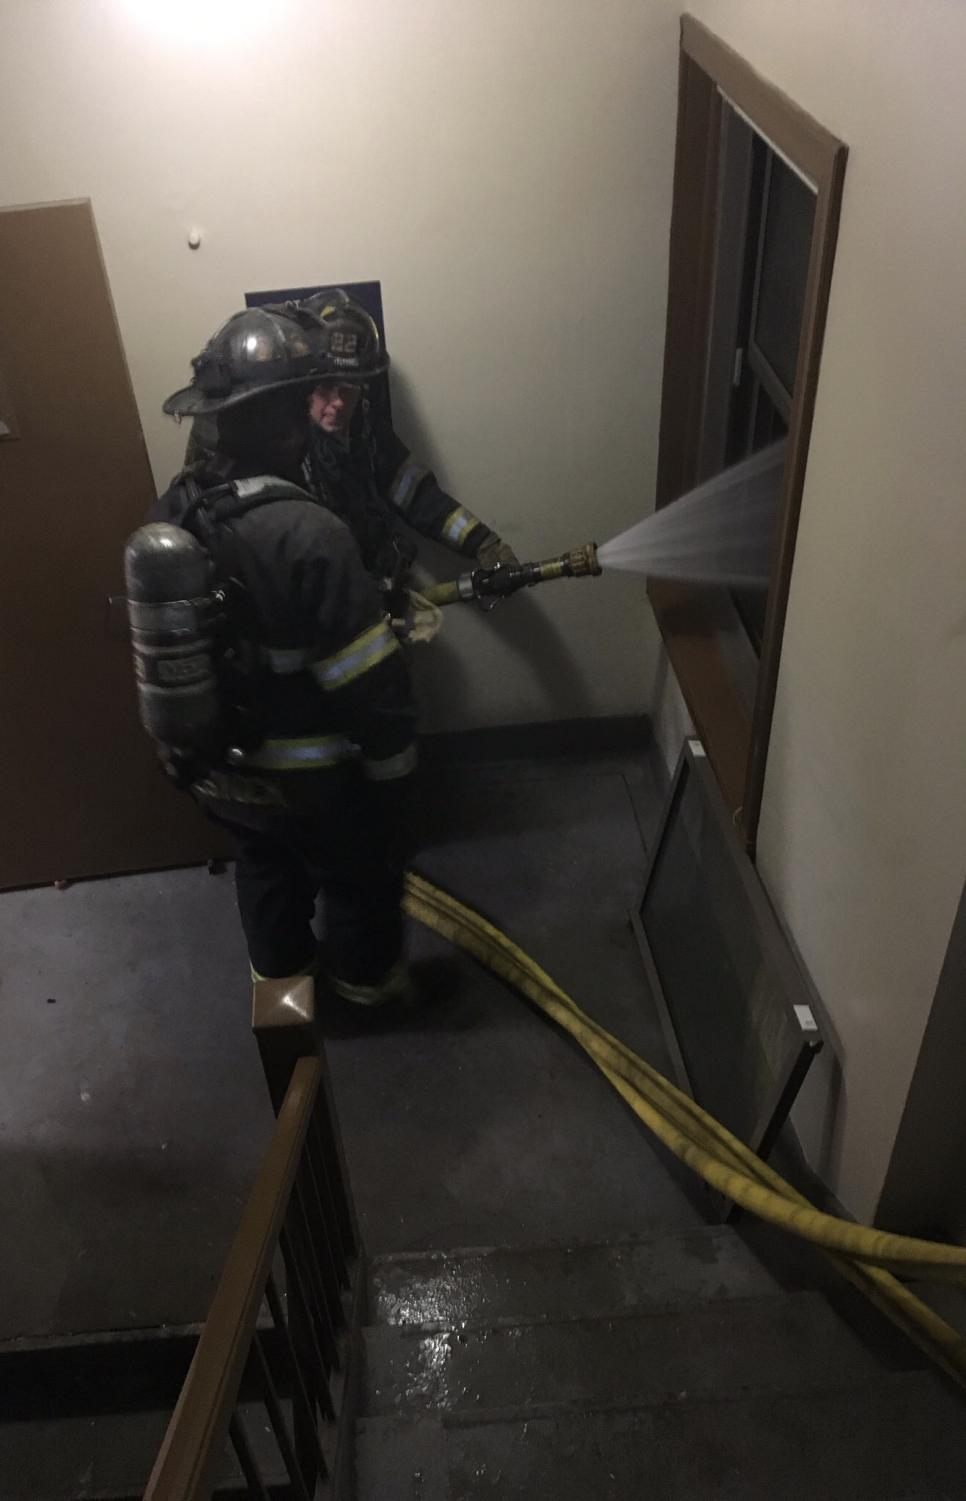 The fire at Commodore Place Apartments was caused by was likely caused by improper disposal of smoking equipment. No injuries were caused by the fire.